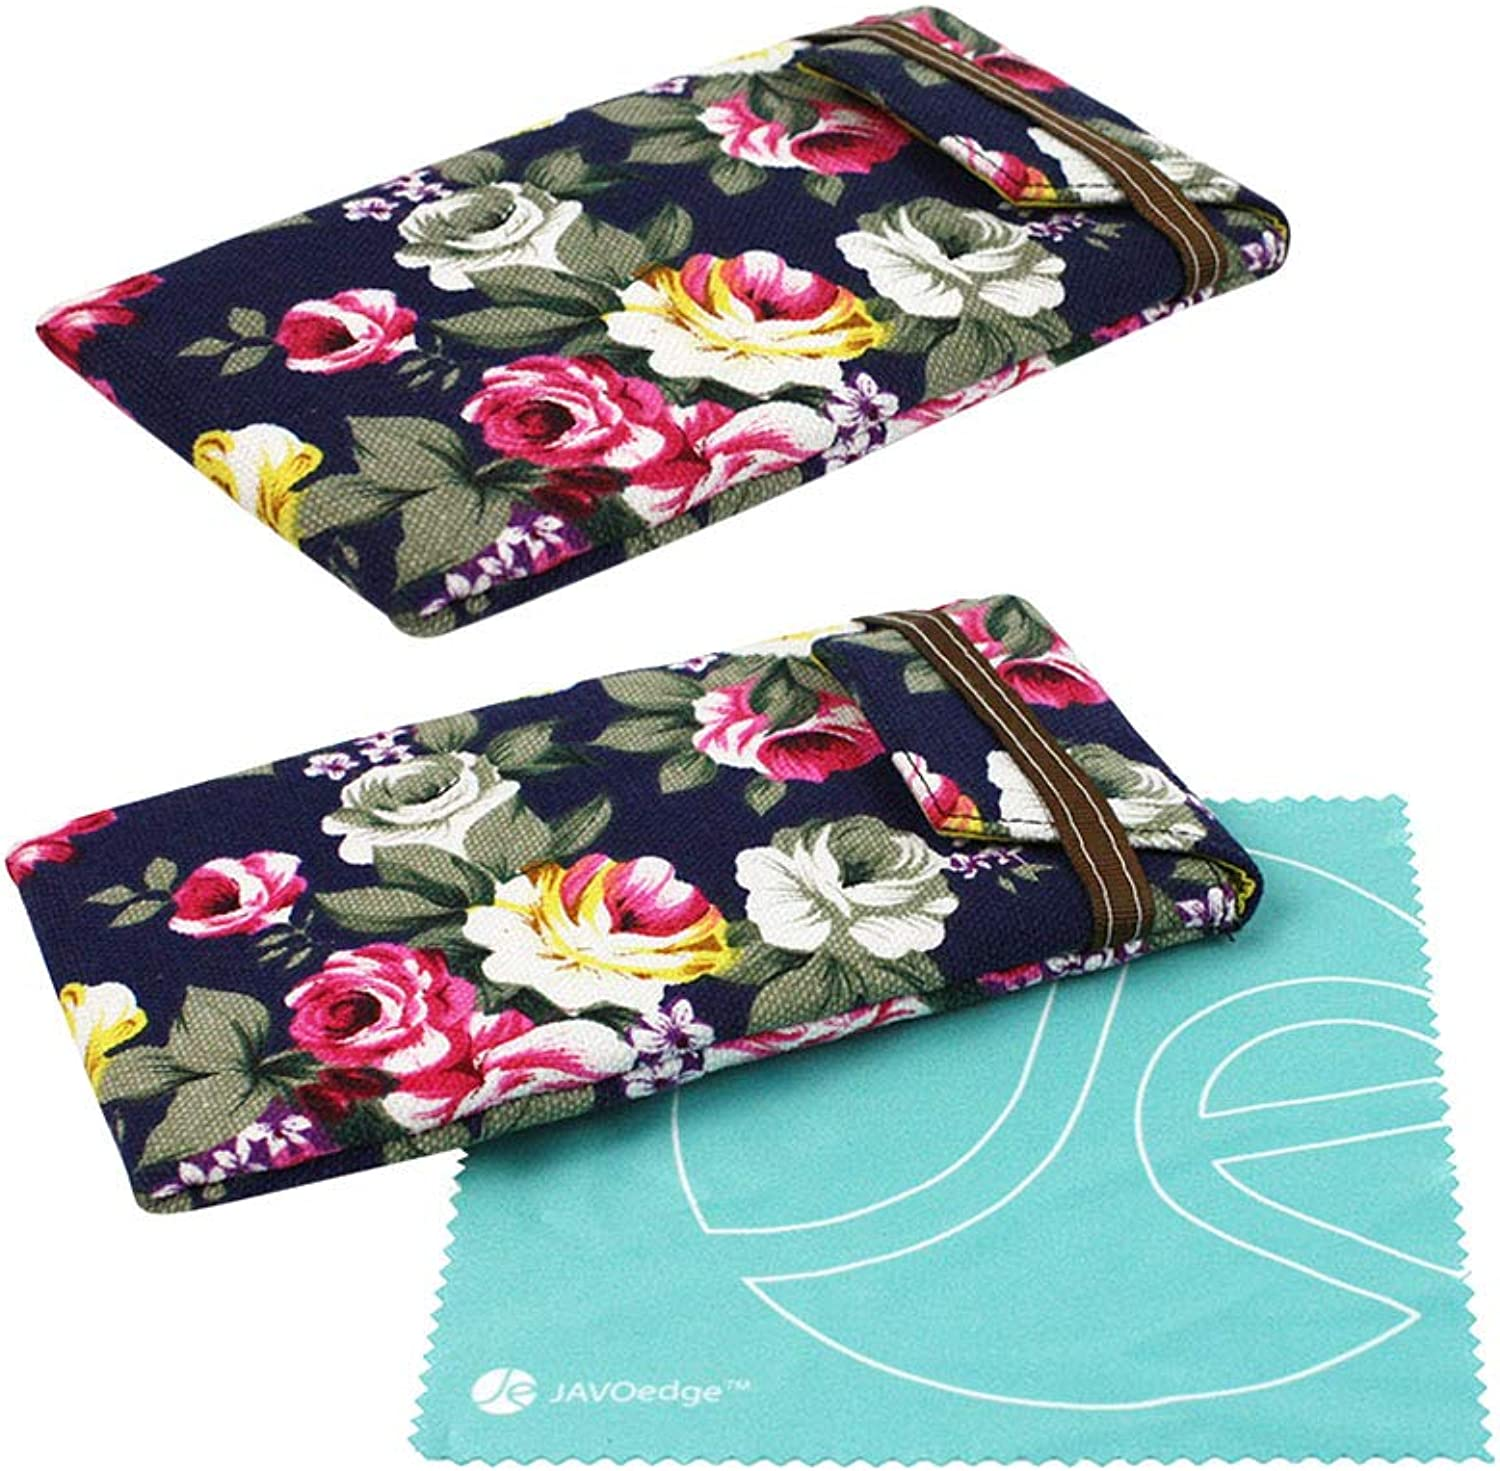 [2 PACK], JAVOedge Soft Slip In Floral Eyeglass Pouch Case Plus Cleaning Cloth